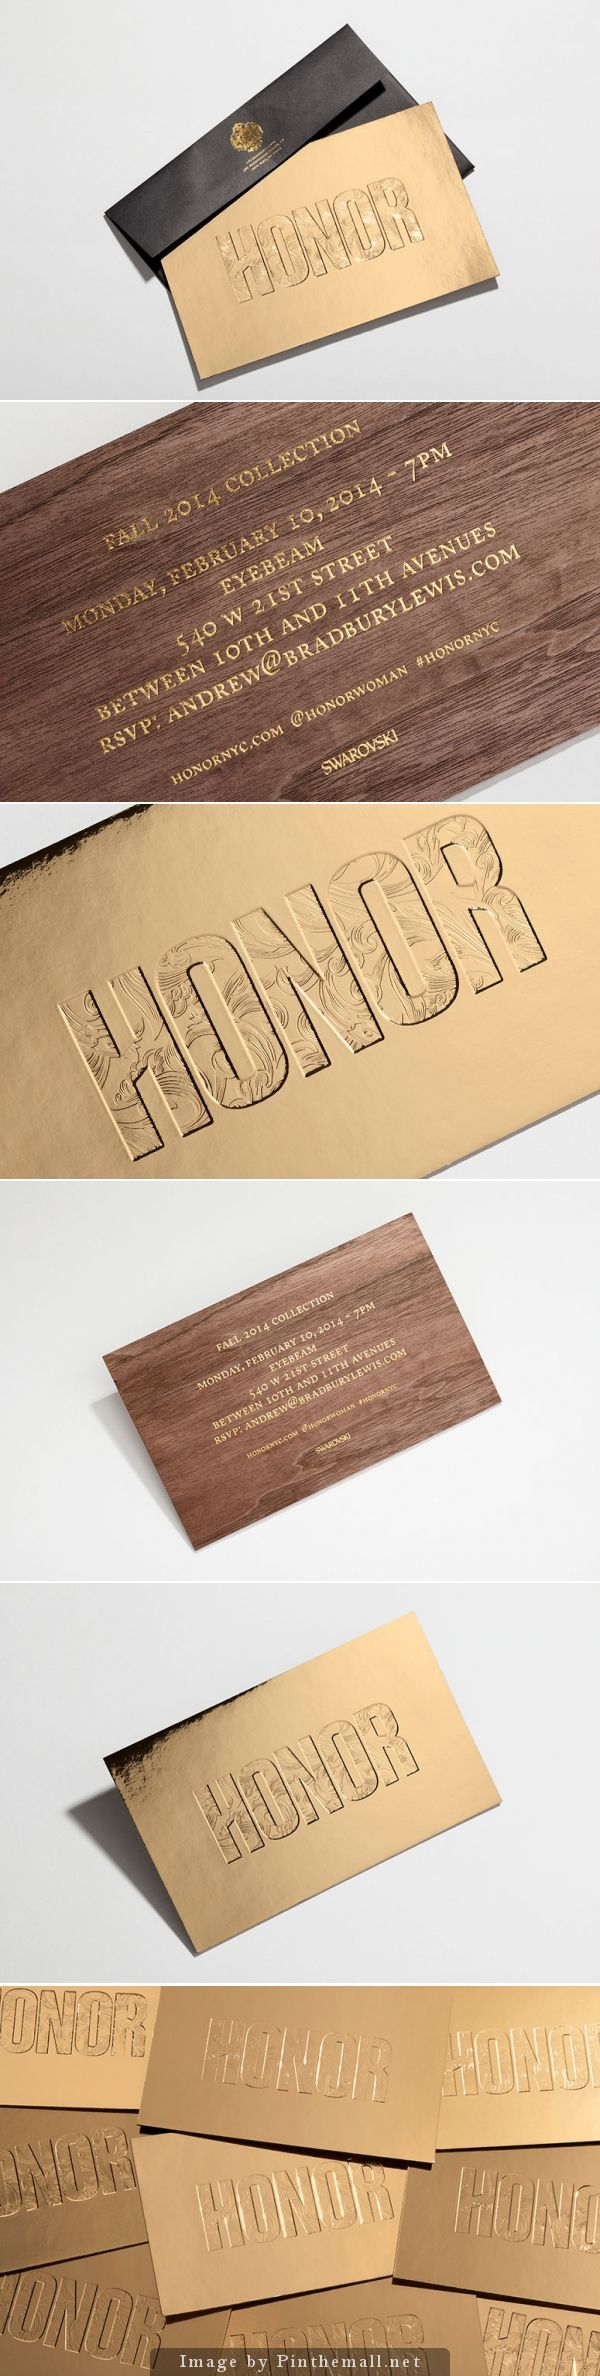 corporate event invitation email%0A A siren song of wood veneer and debossed gold foil  this lavish invitation  beckons like